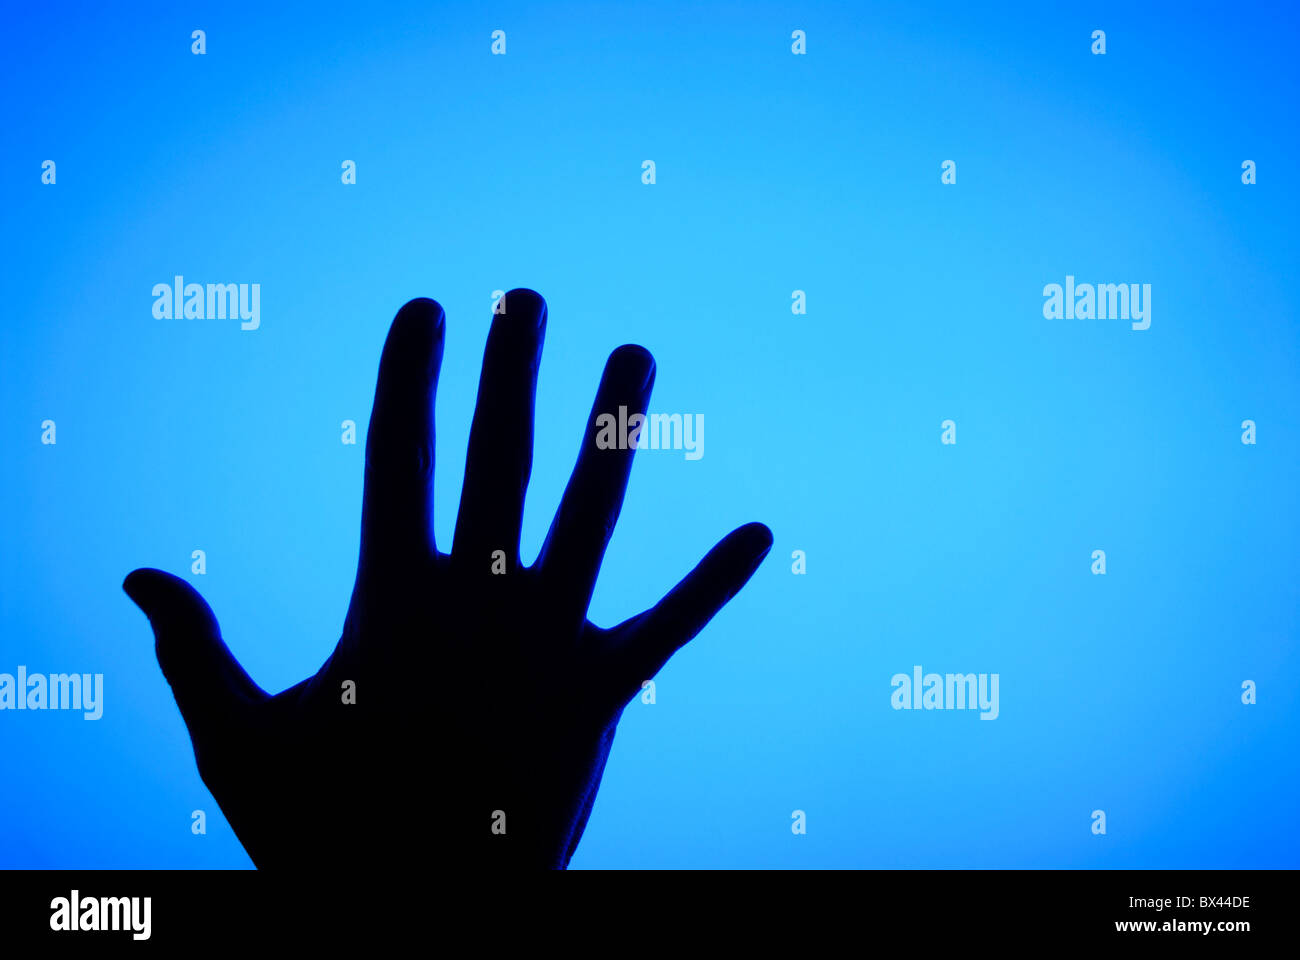 TOUCHING FLAT SCREEN TV - Stock Image